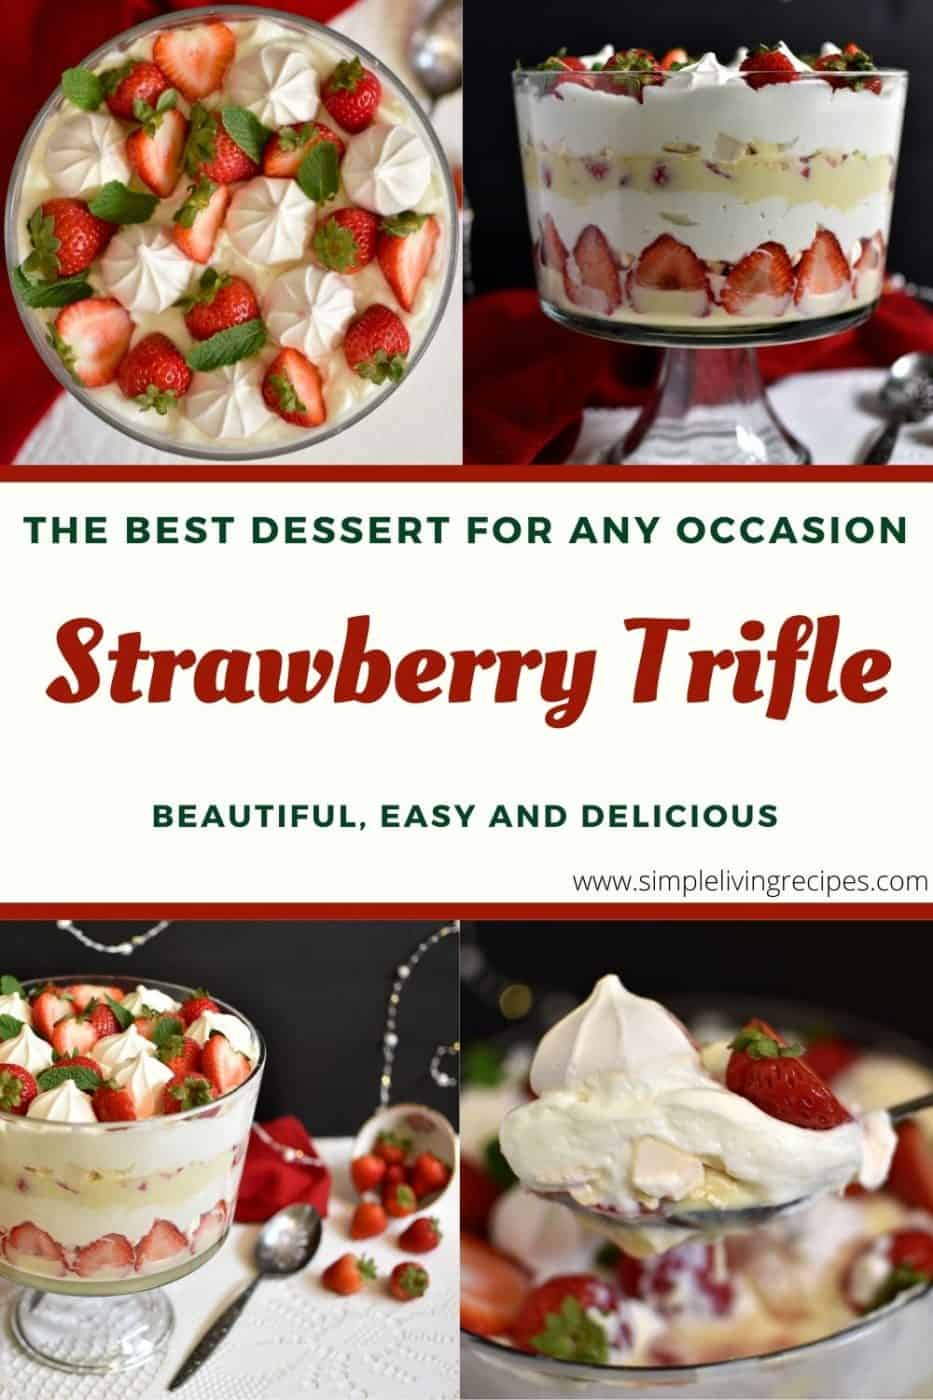 Pinterest Pin for the strawberry trifle